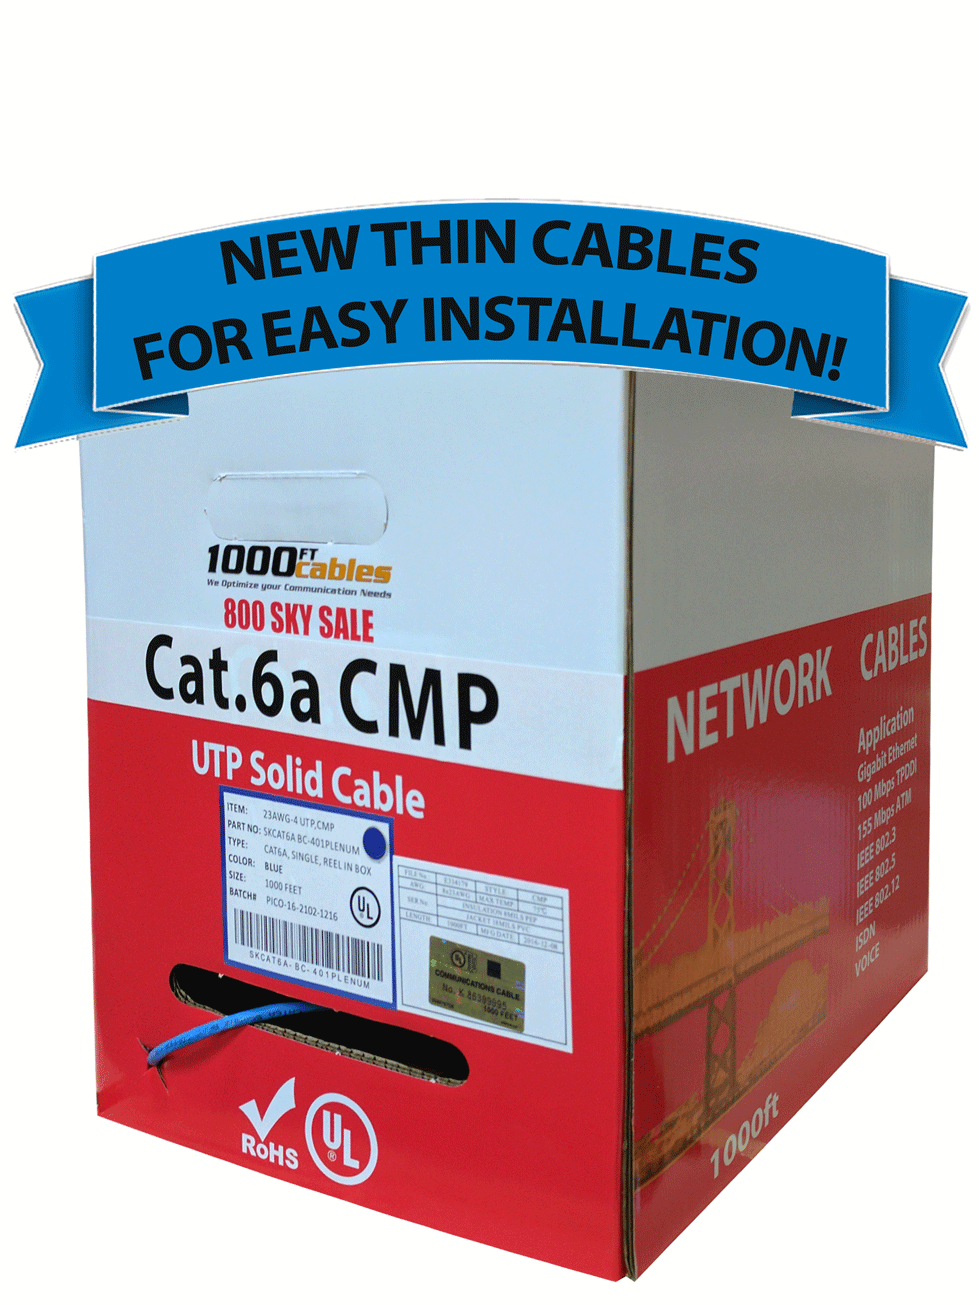 Crossover Cables Are Intended To Connect Two Computers And Home Ethernet Wiring Box Closely Related Patch Discount Bulk Megasale